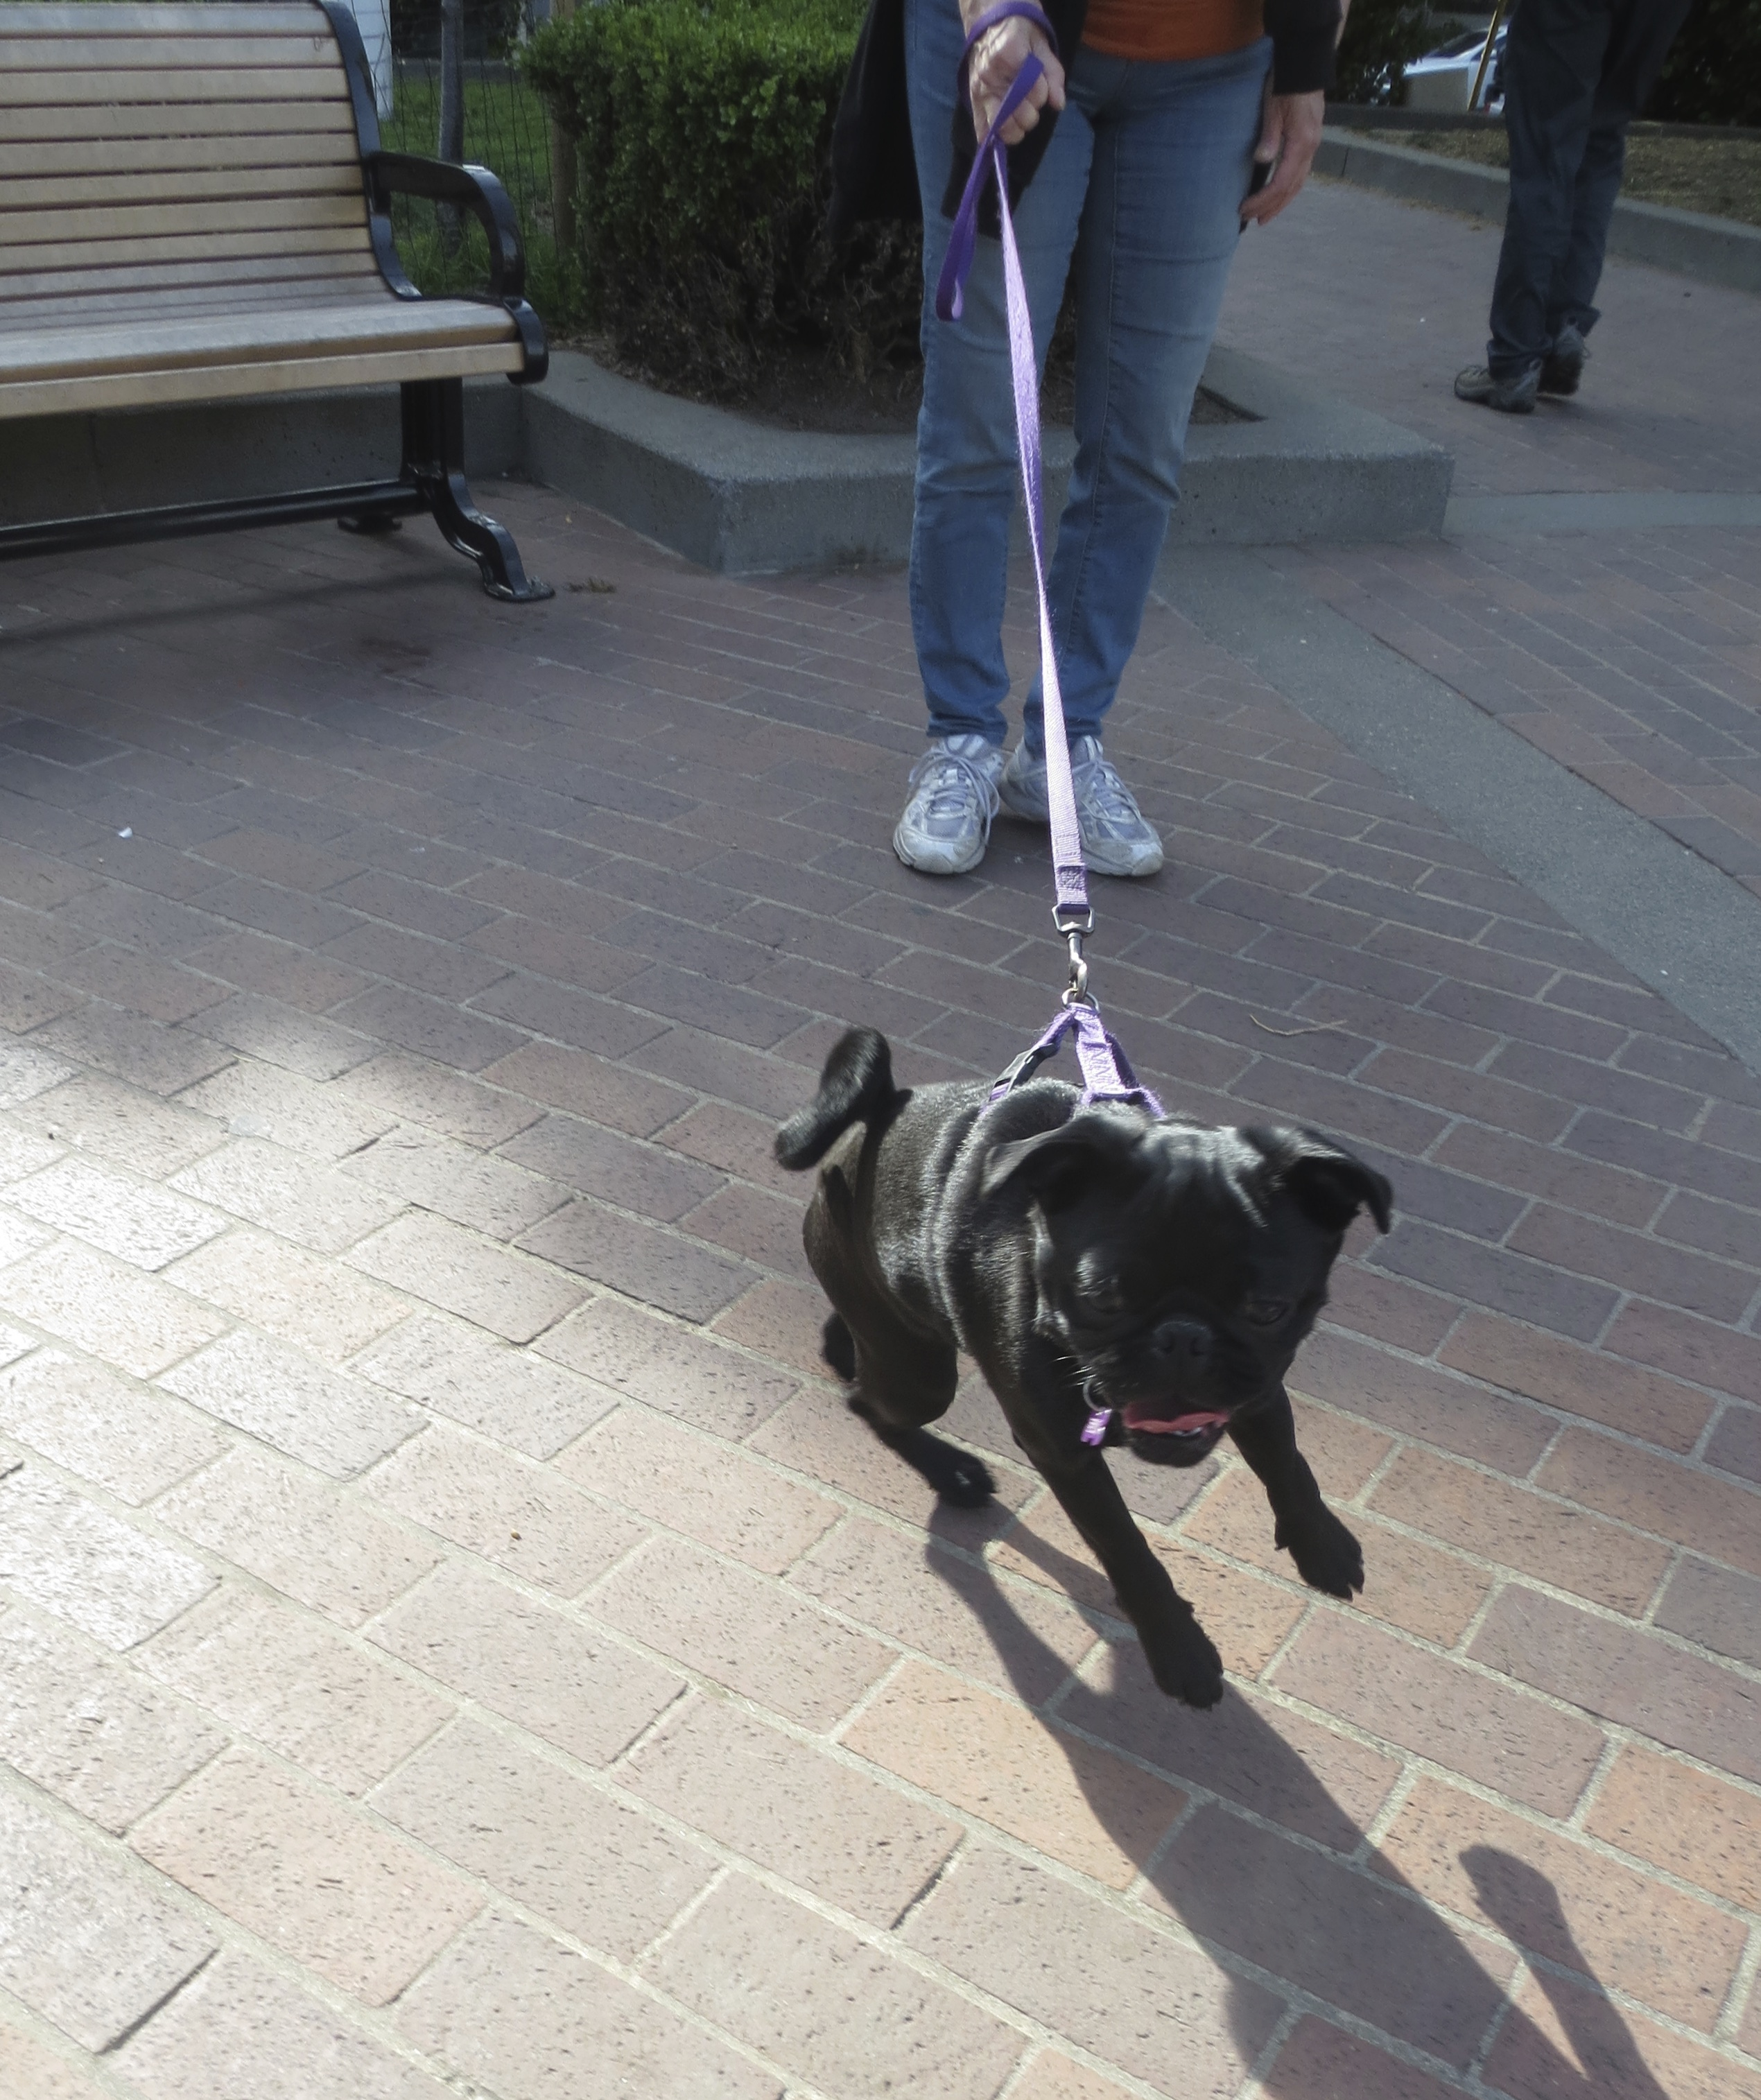 Black Pug Puppy Straining At End Of Leash